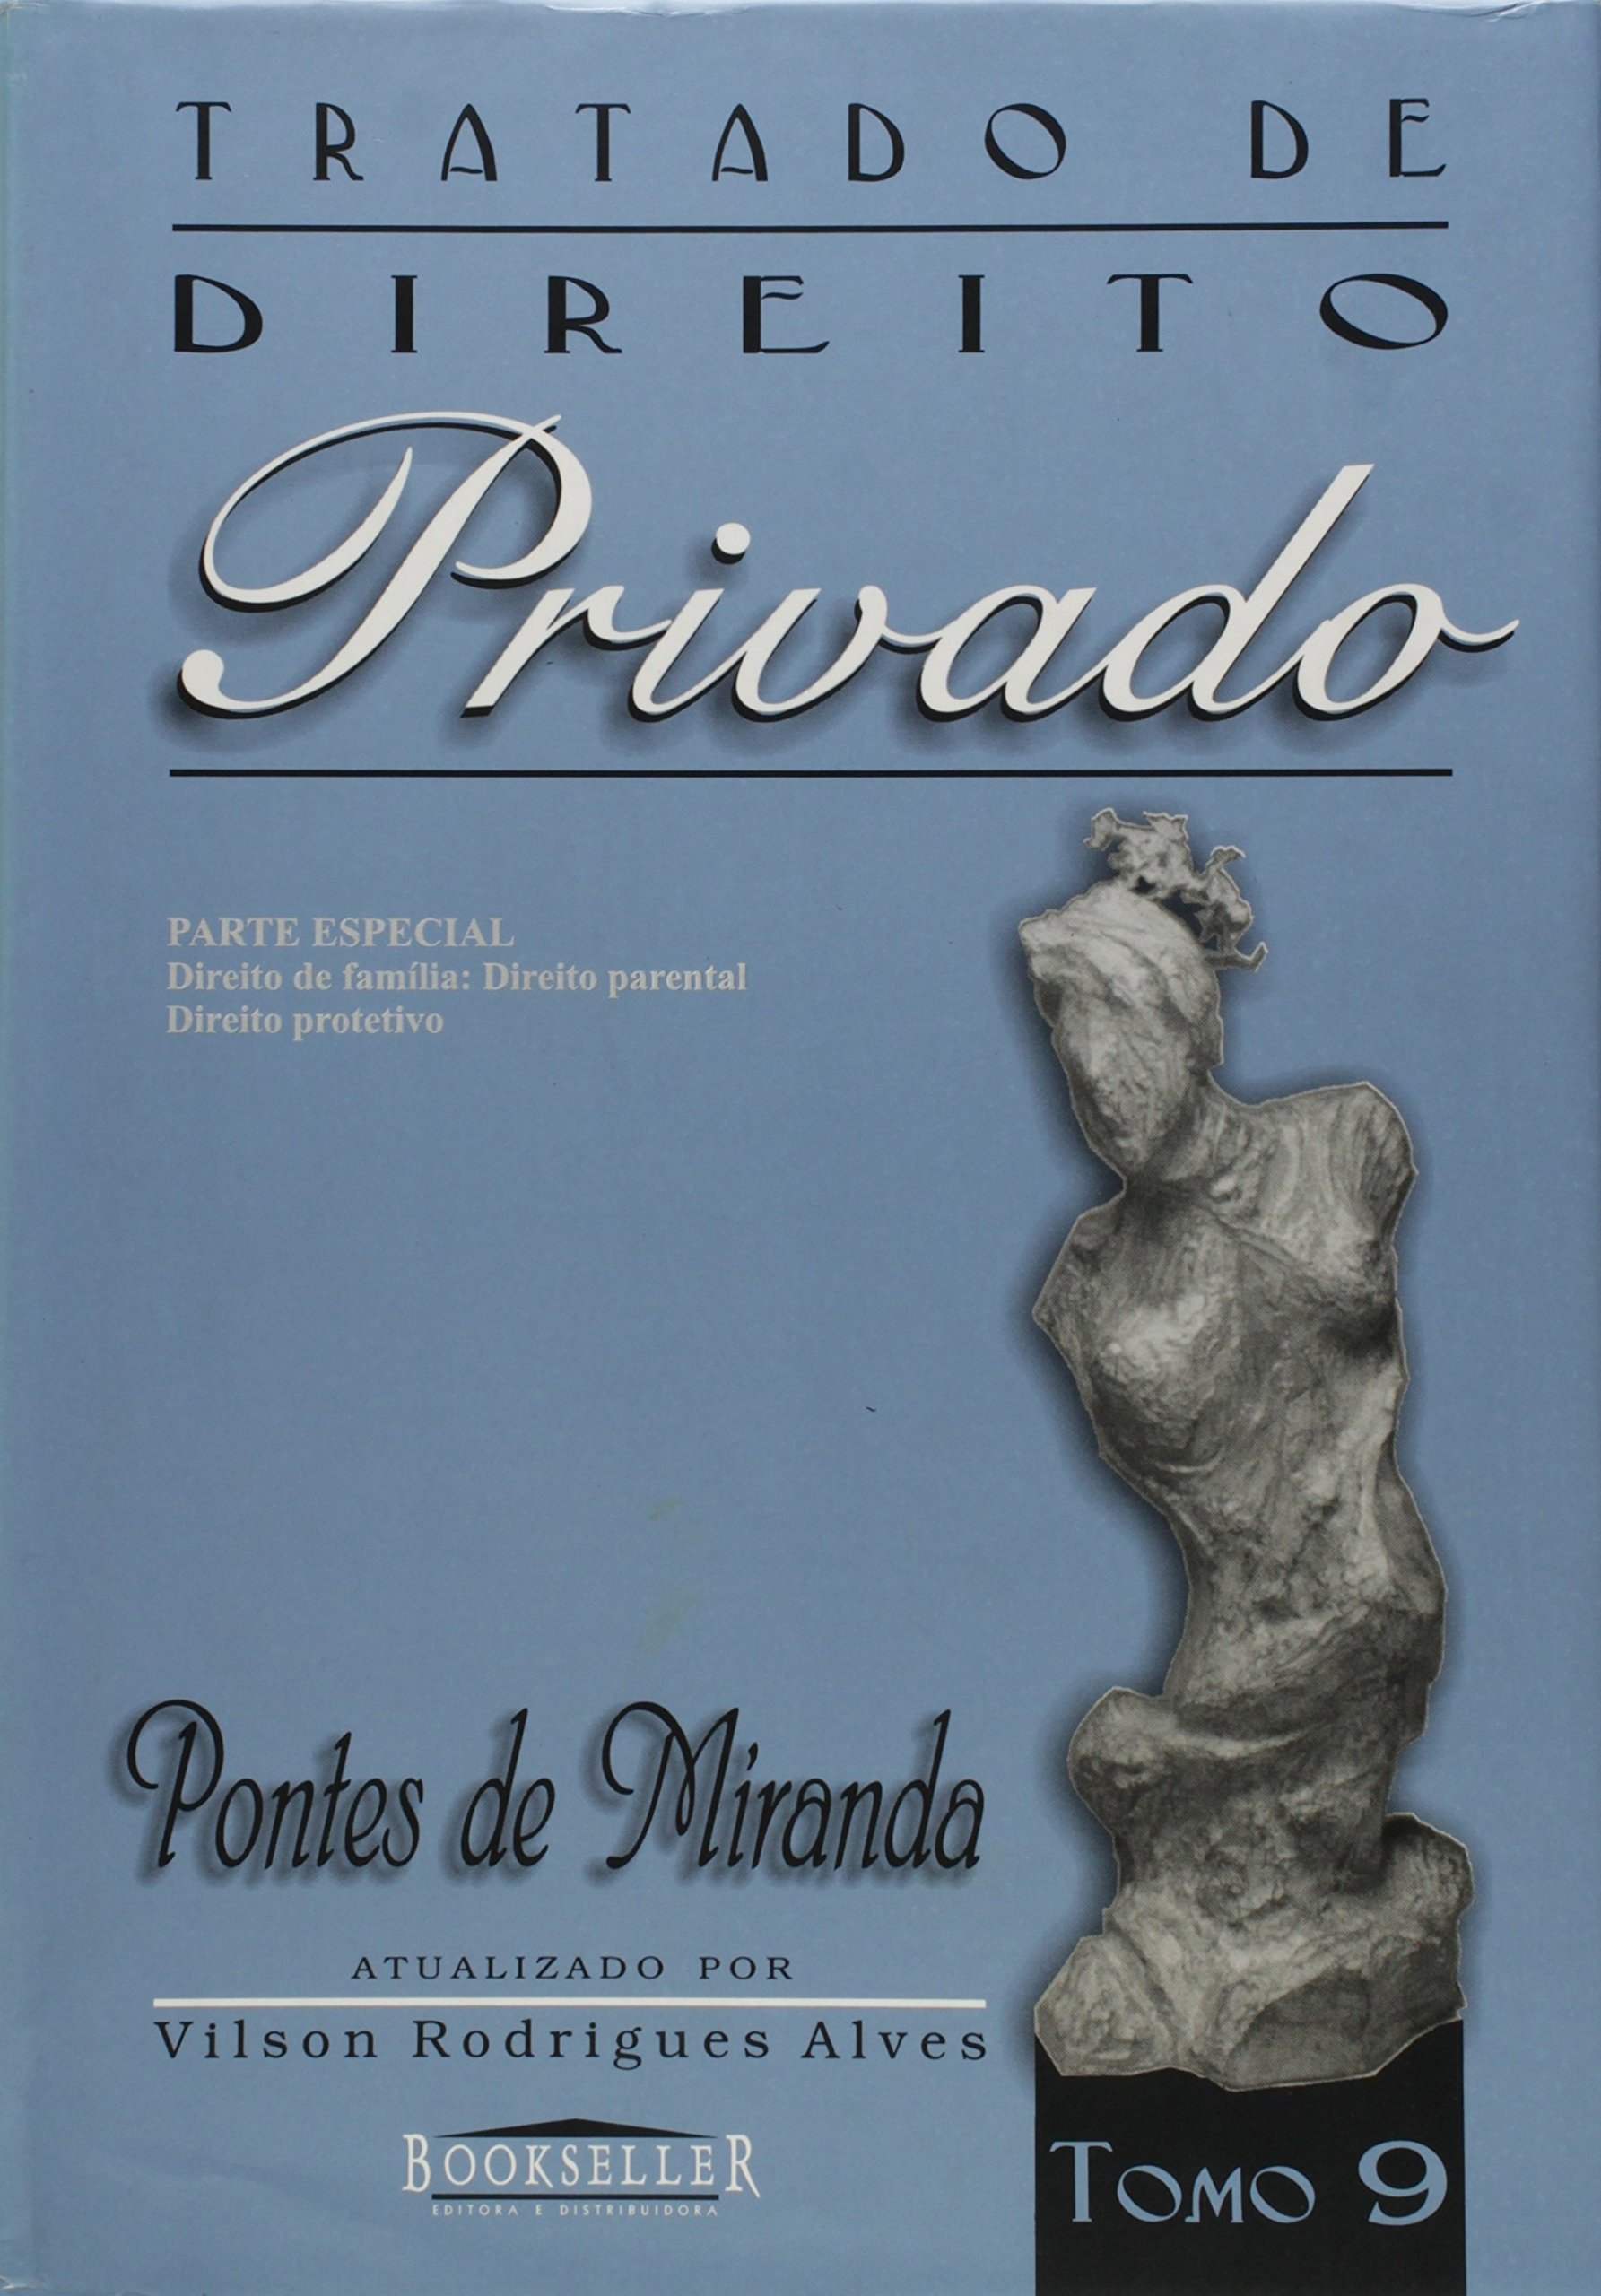 Tratado de Direito Privado - Volume 9 Text fb2 book